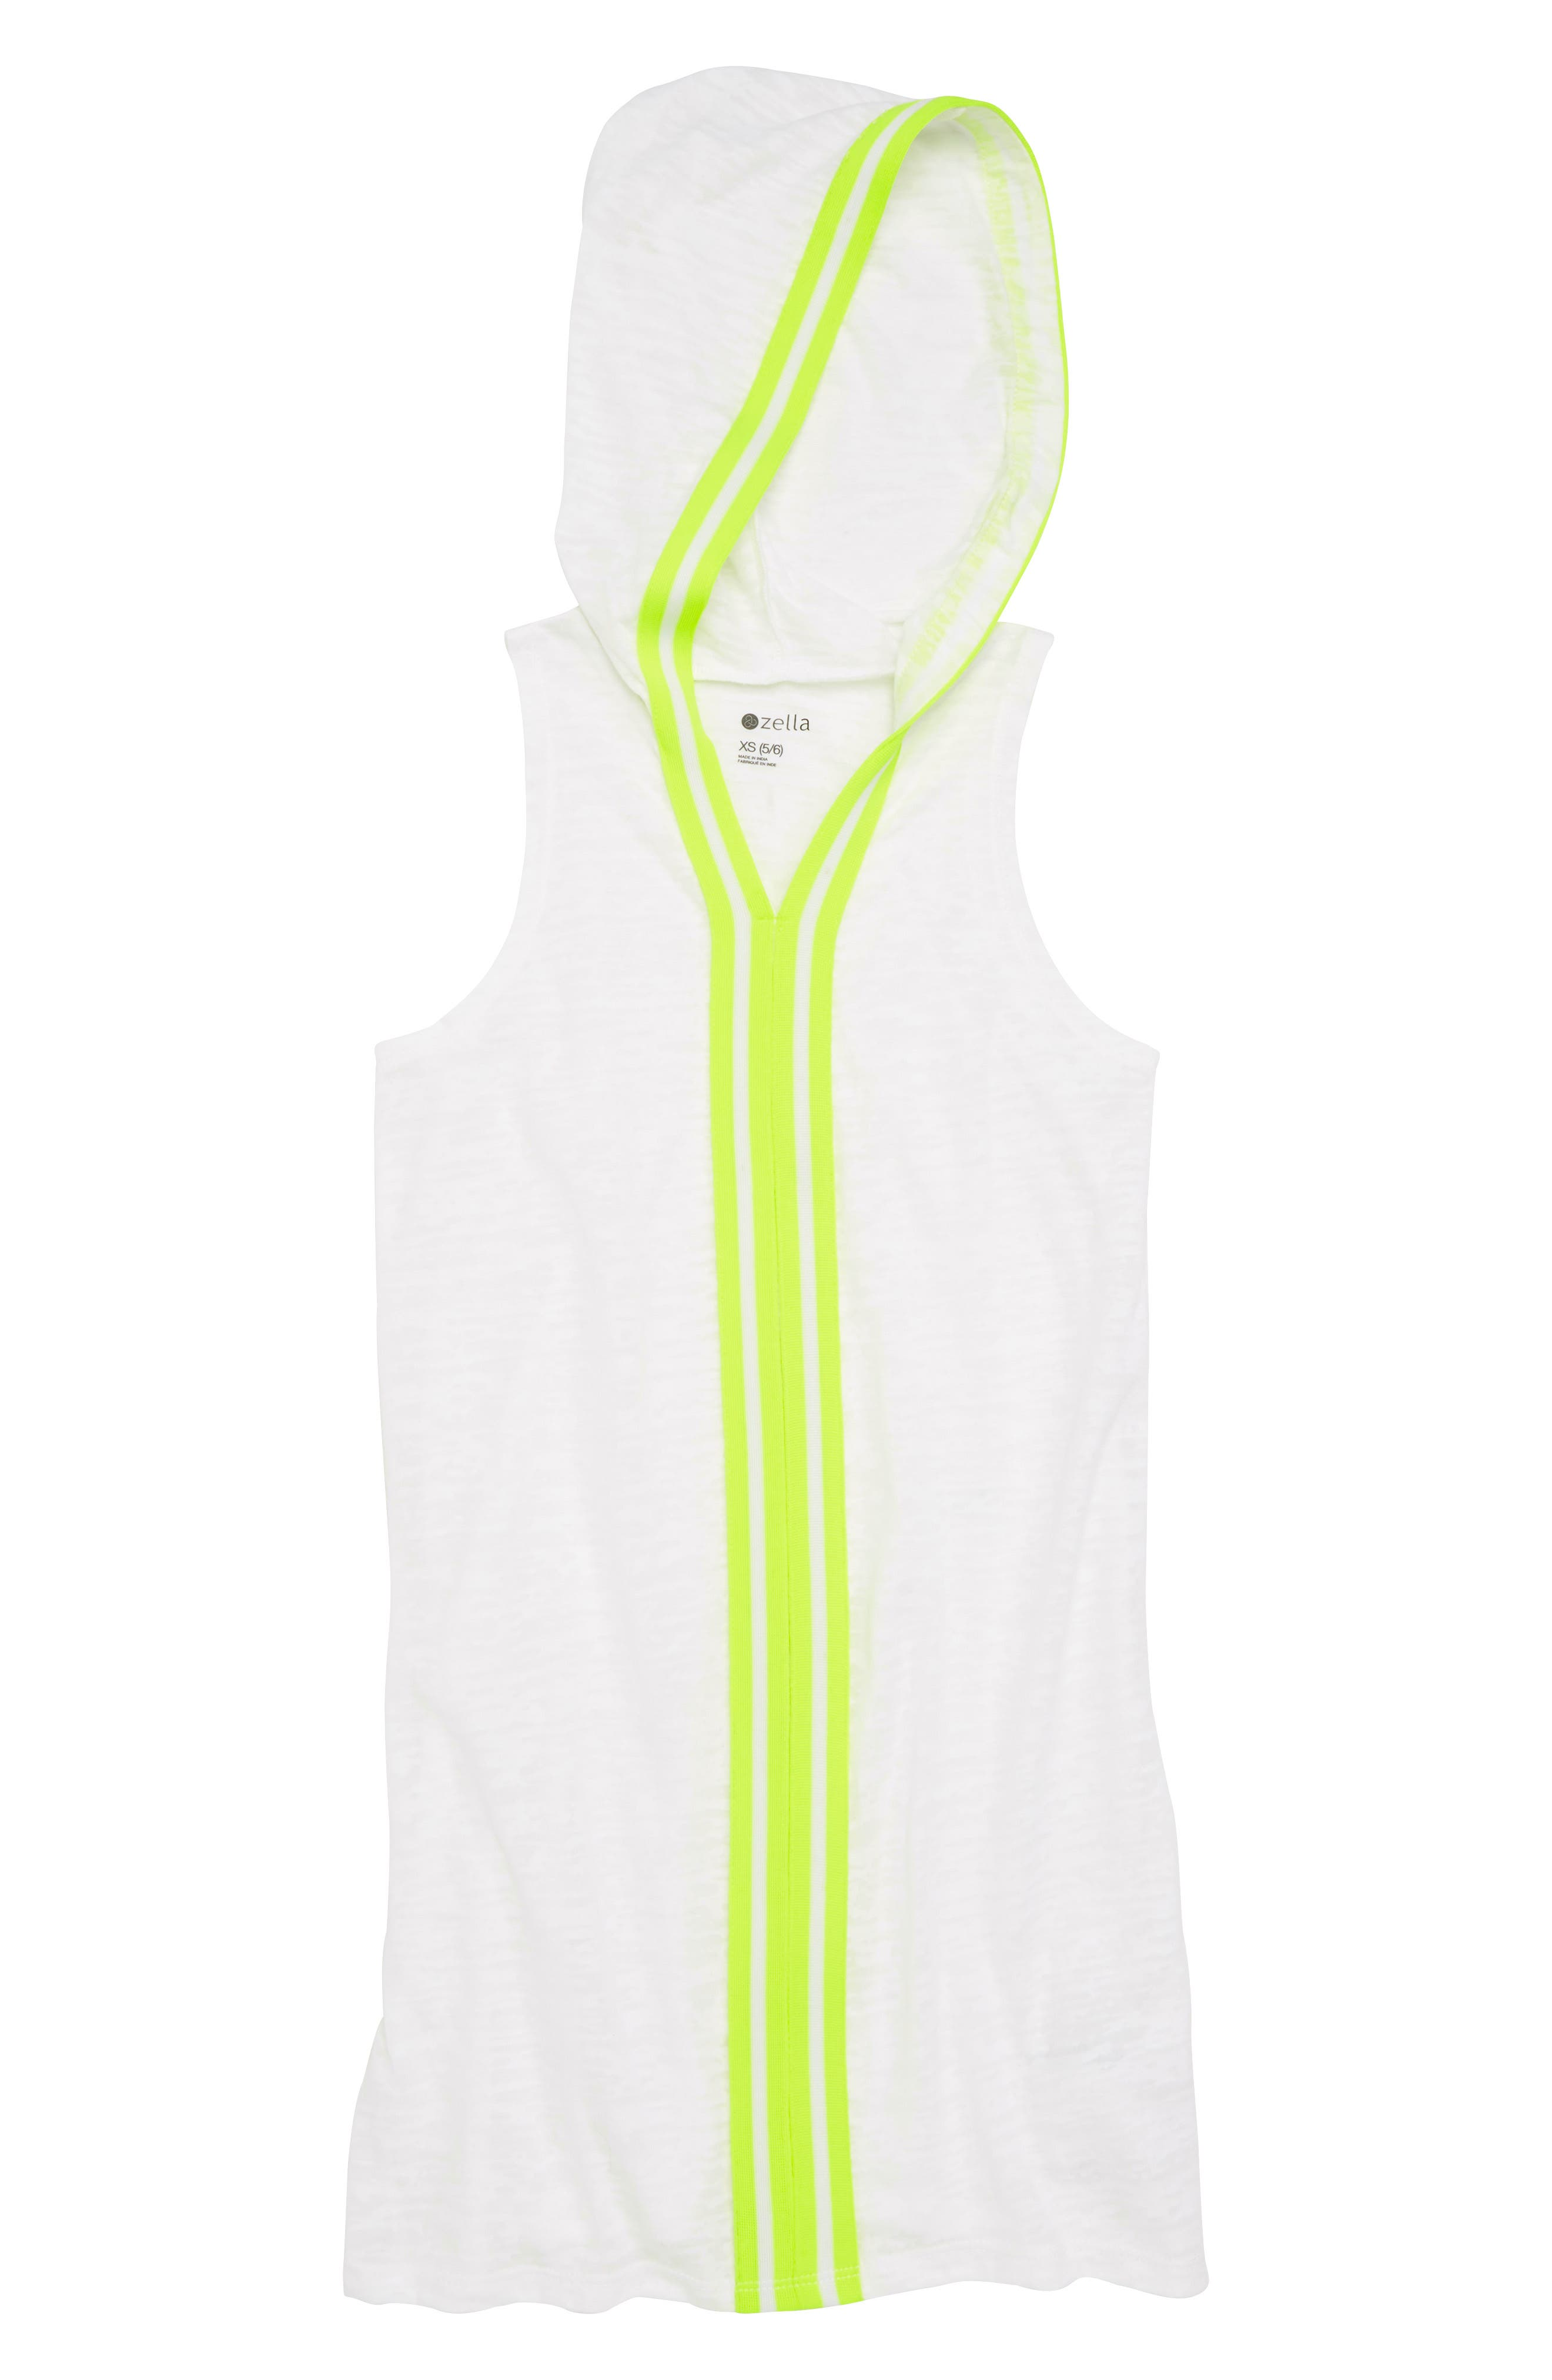 Zella Neon Hooded Cover-Up Dress,                         Main,                         color, White